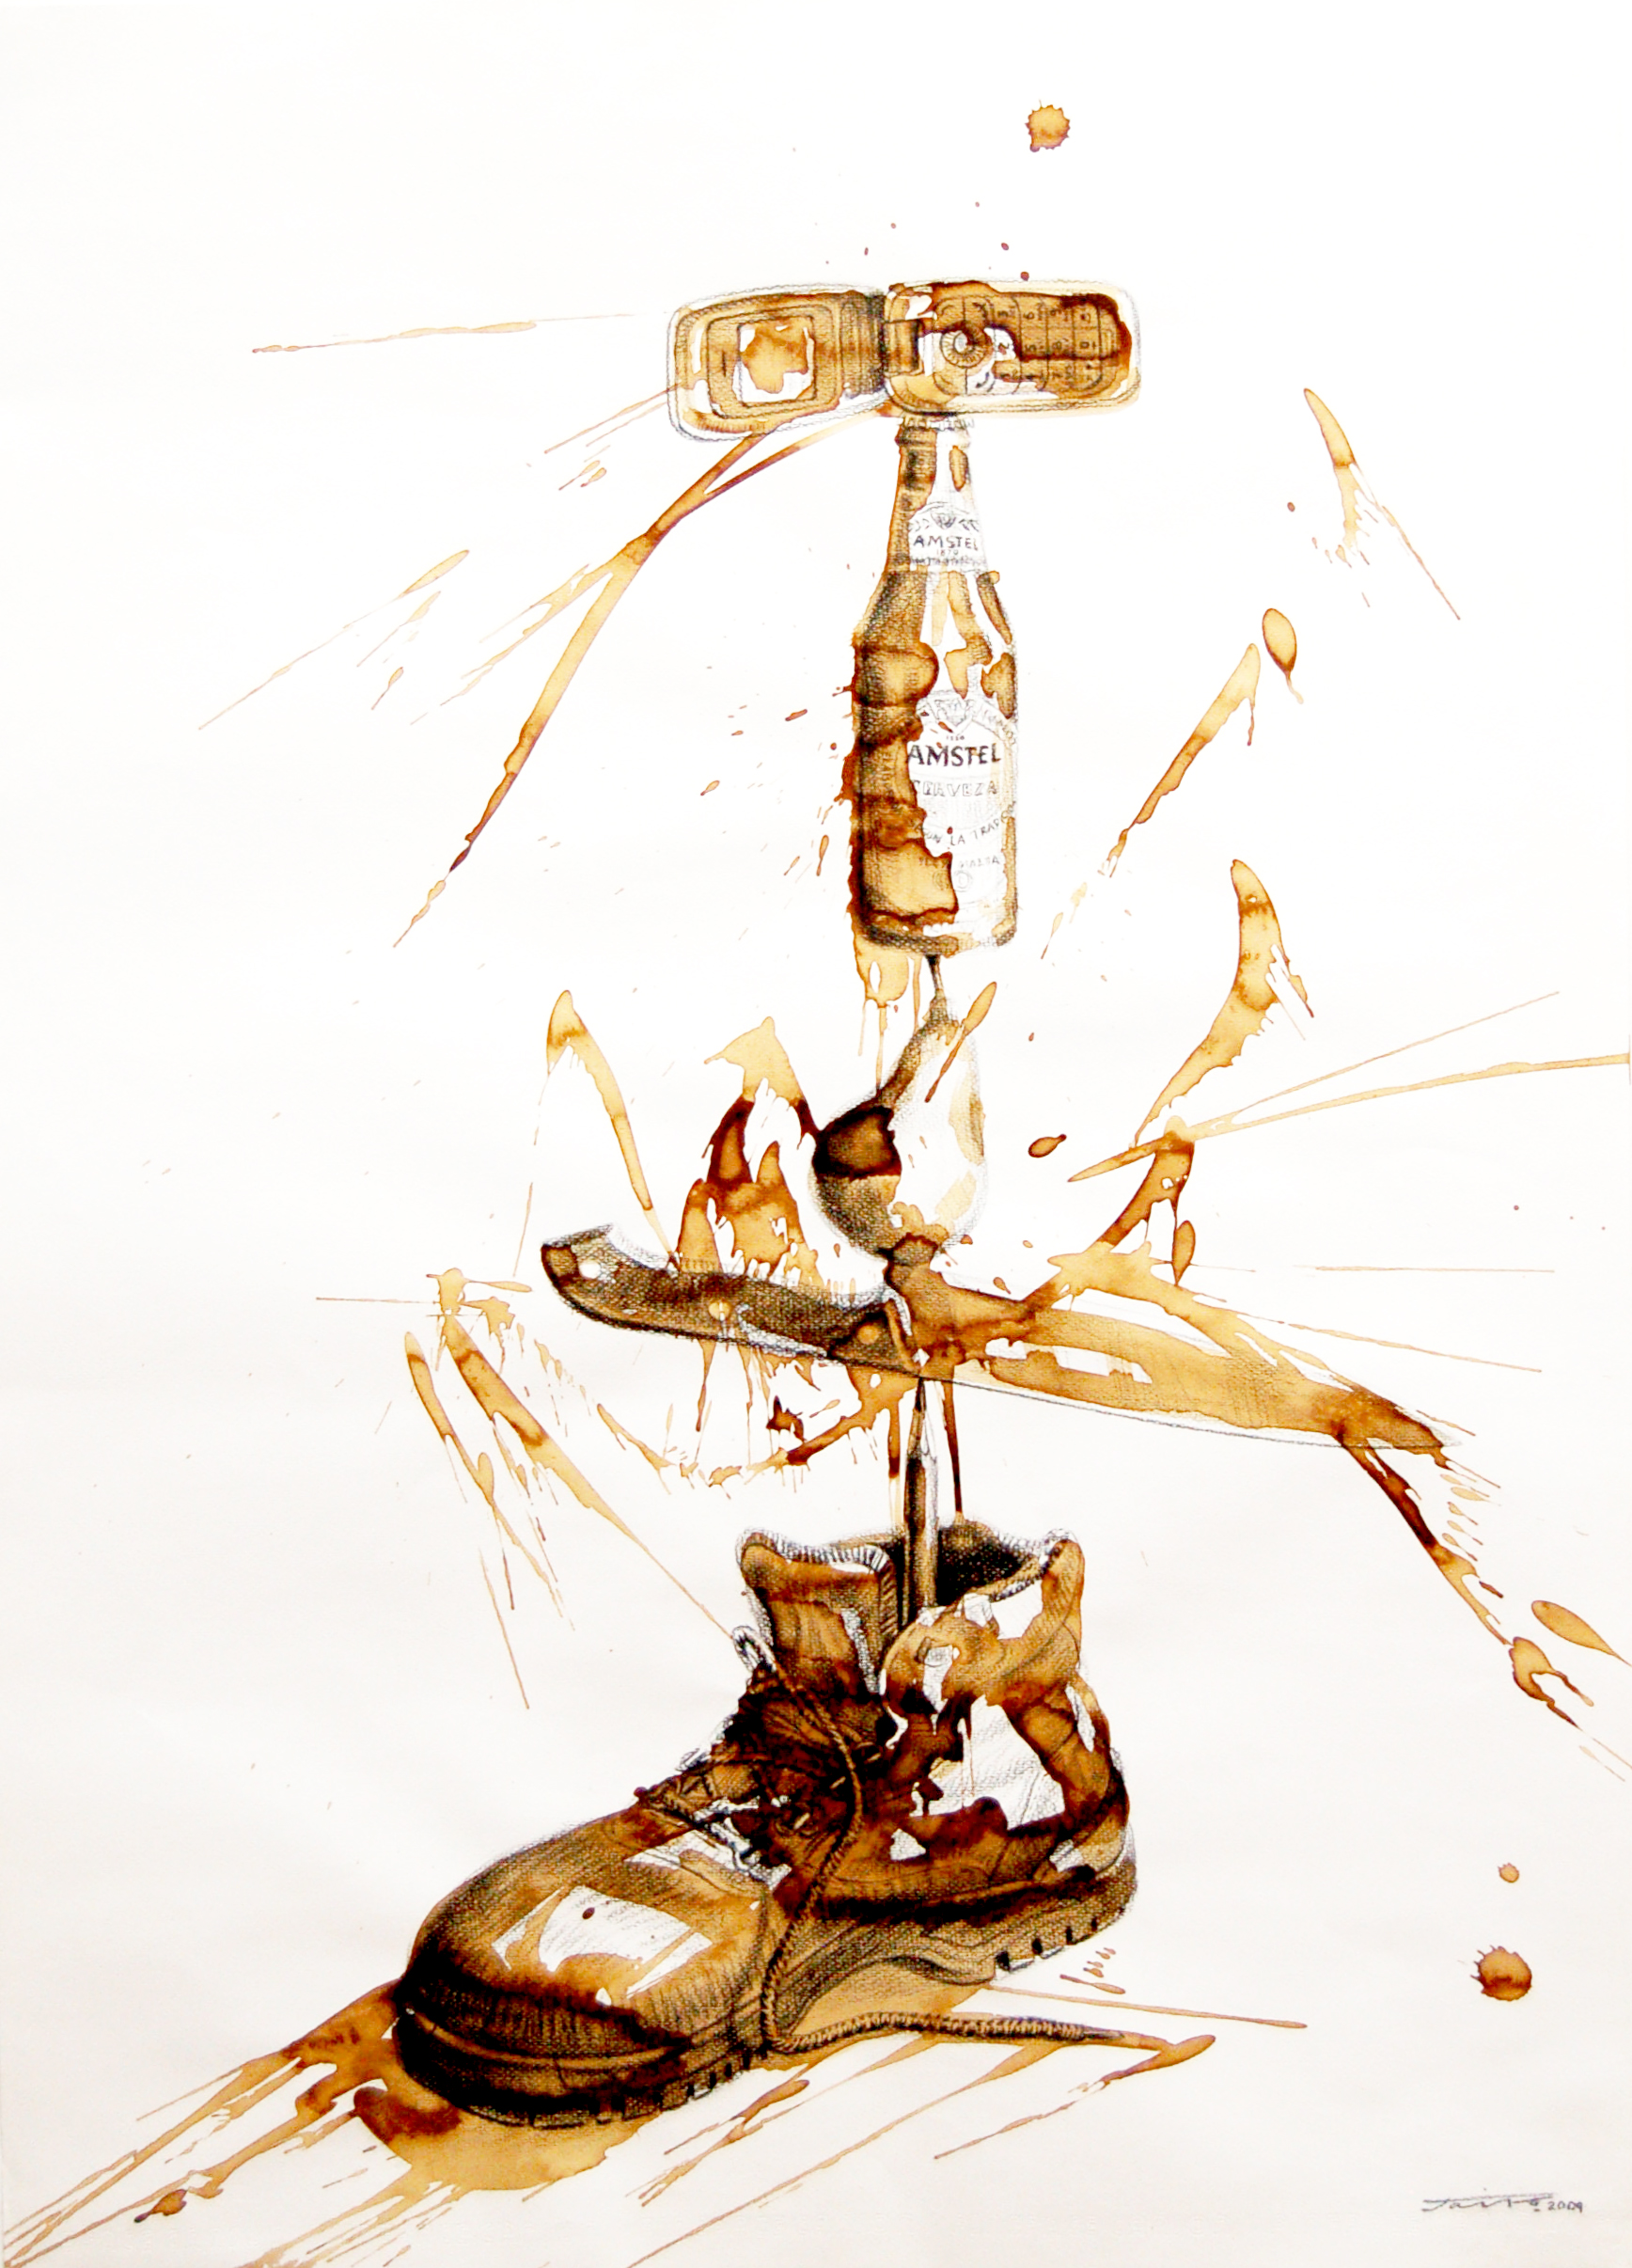 Jairo Alfonso, Untitled, Equilibrium Series, Mixed Media on Paper, 2009, 77cm x 55cm